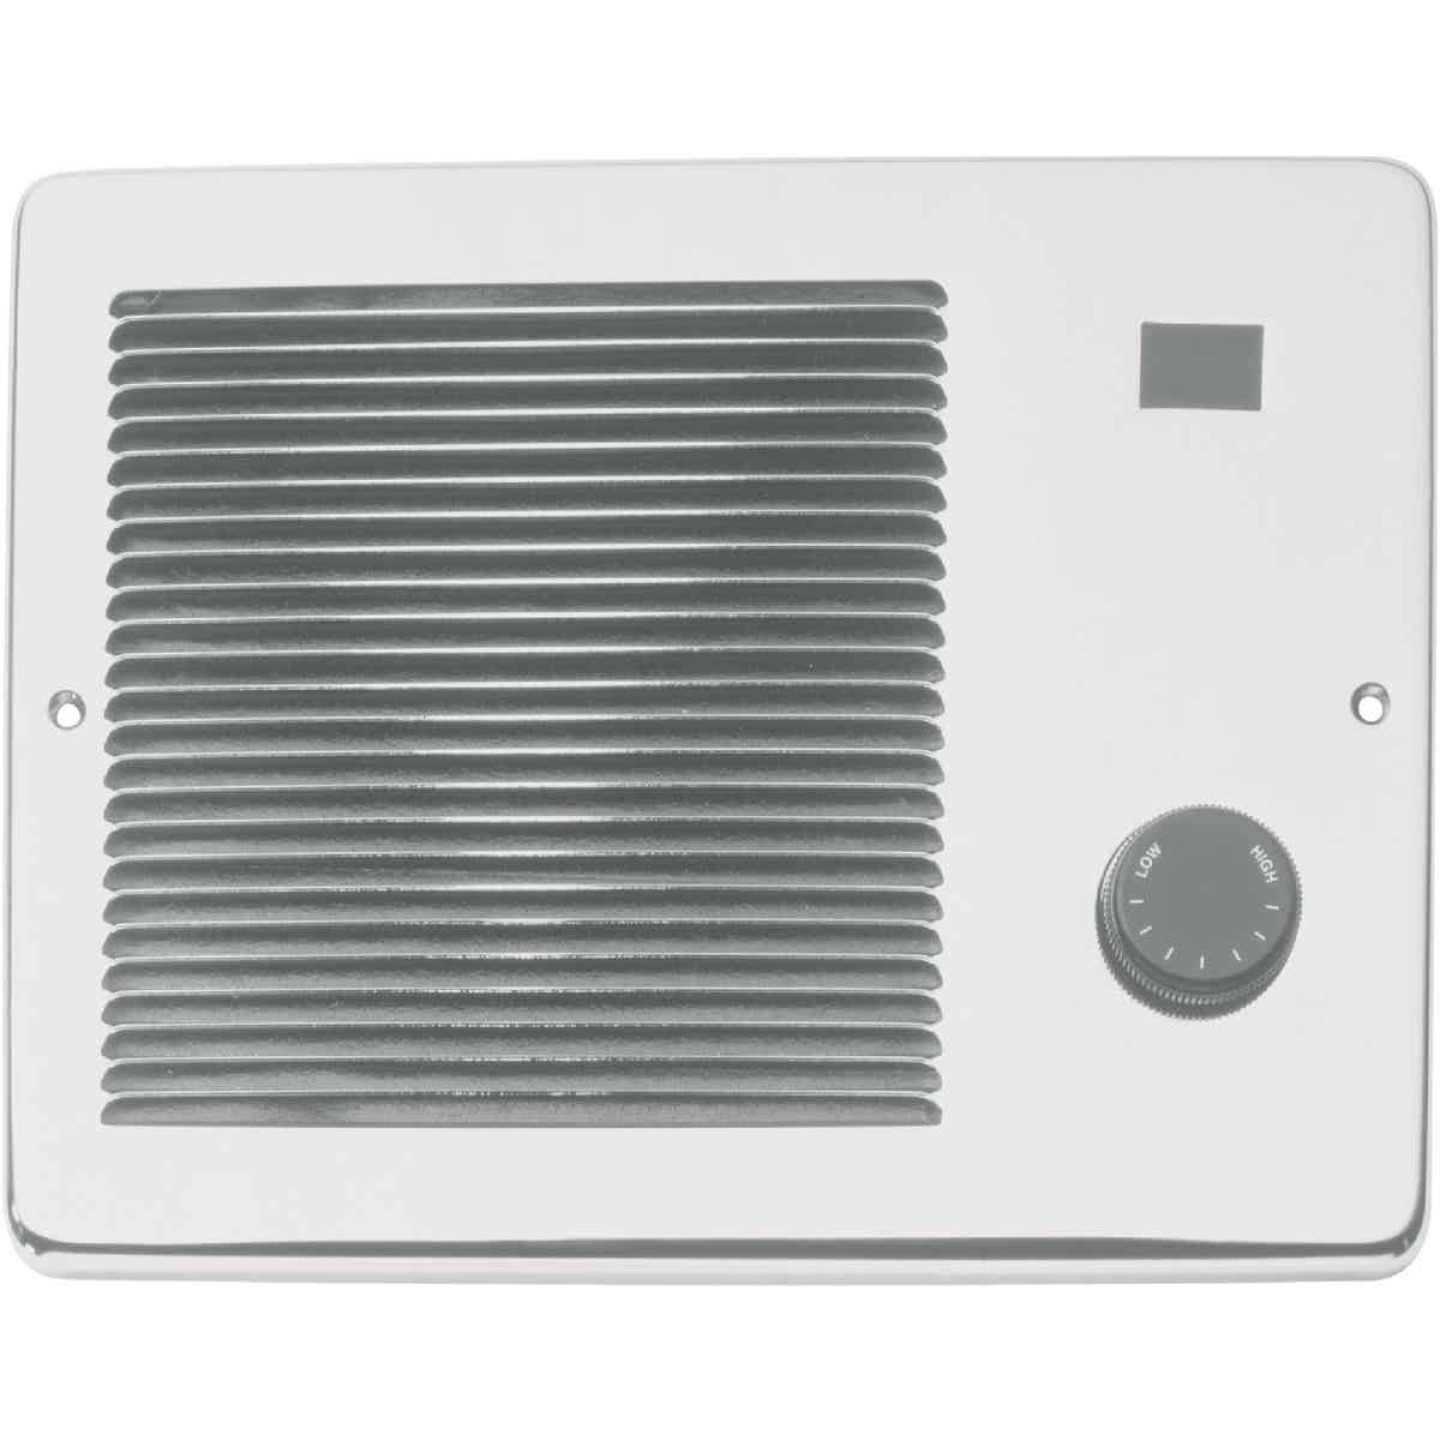 Broan 1500-Watt 120-Volt Comfort-Flo Electric Wall Heater Image 1